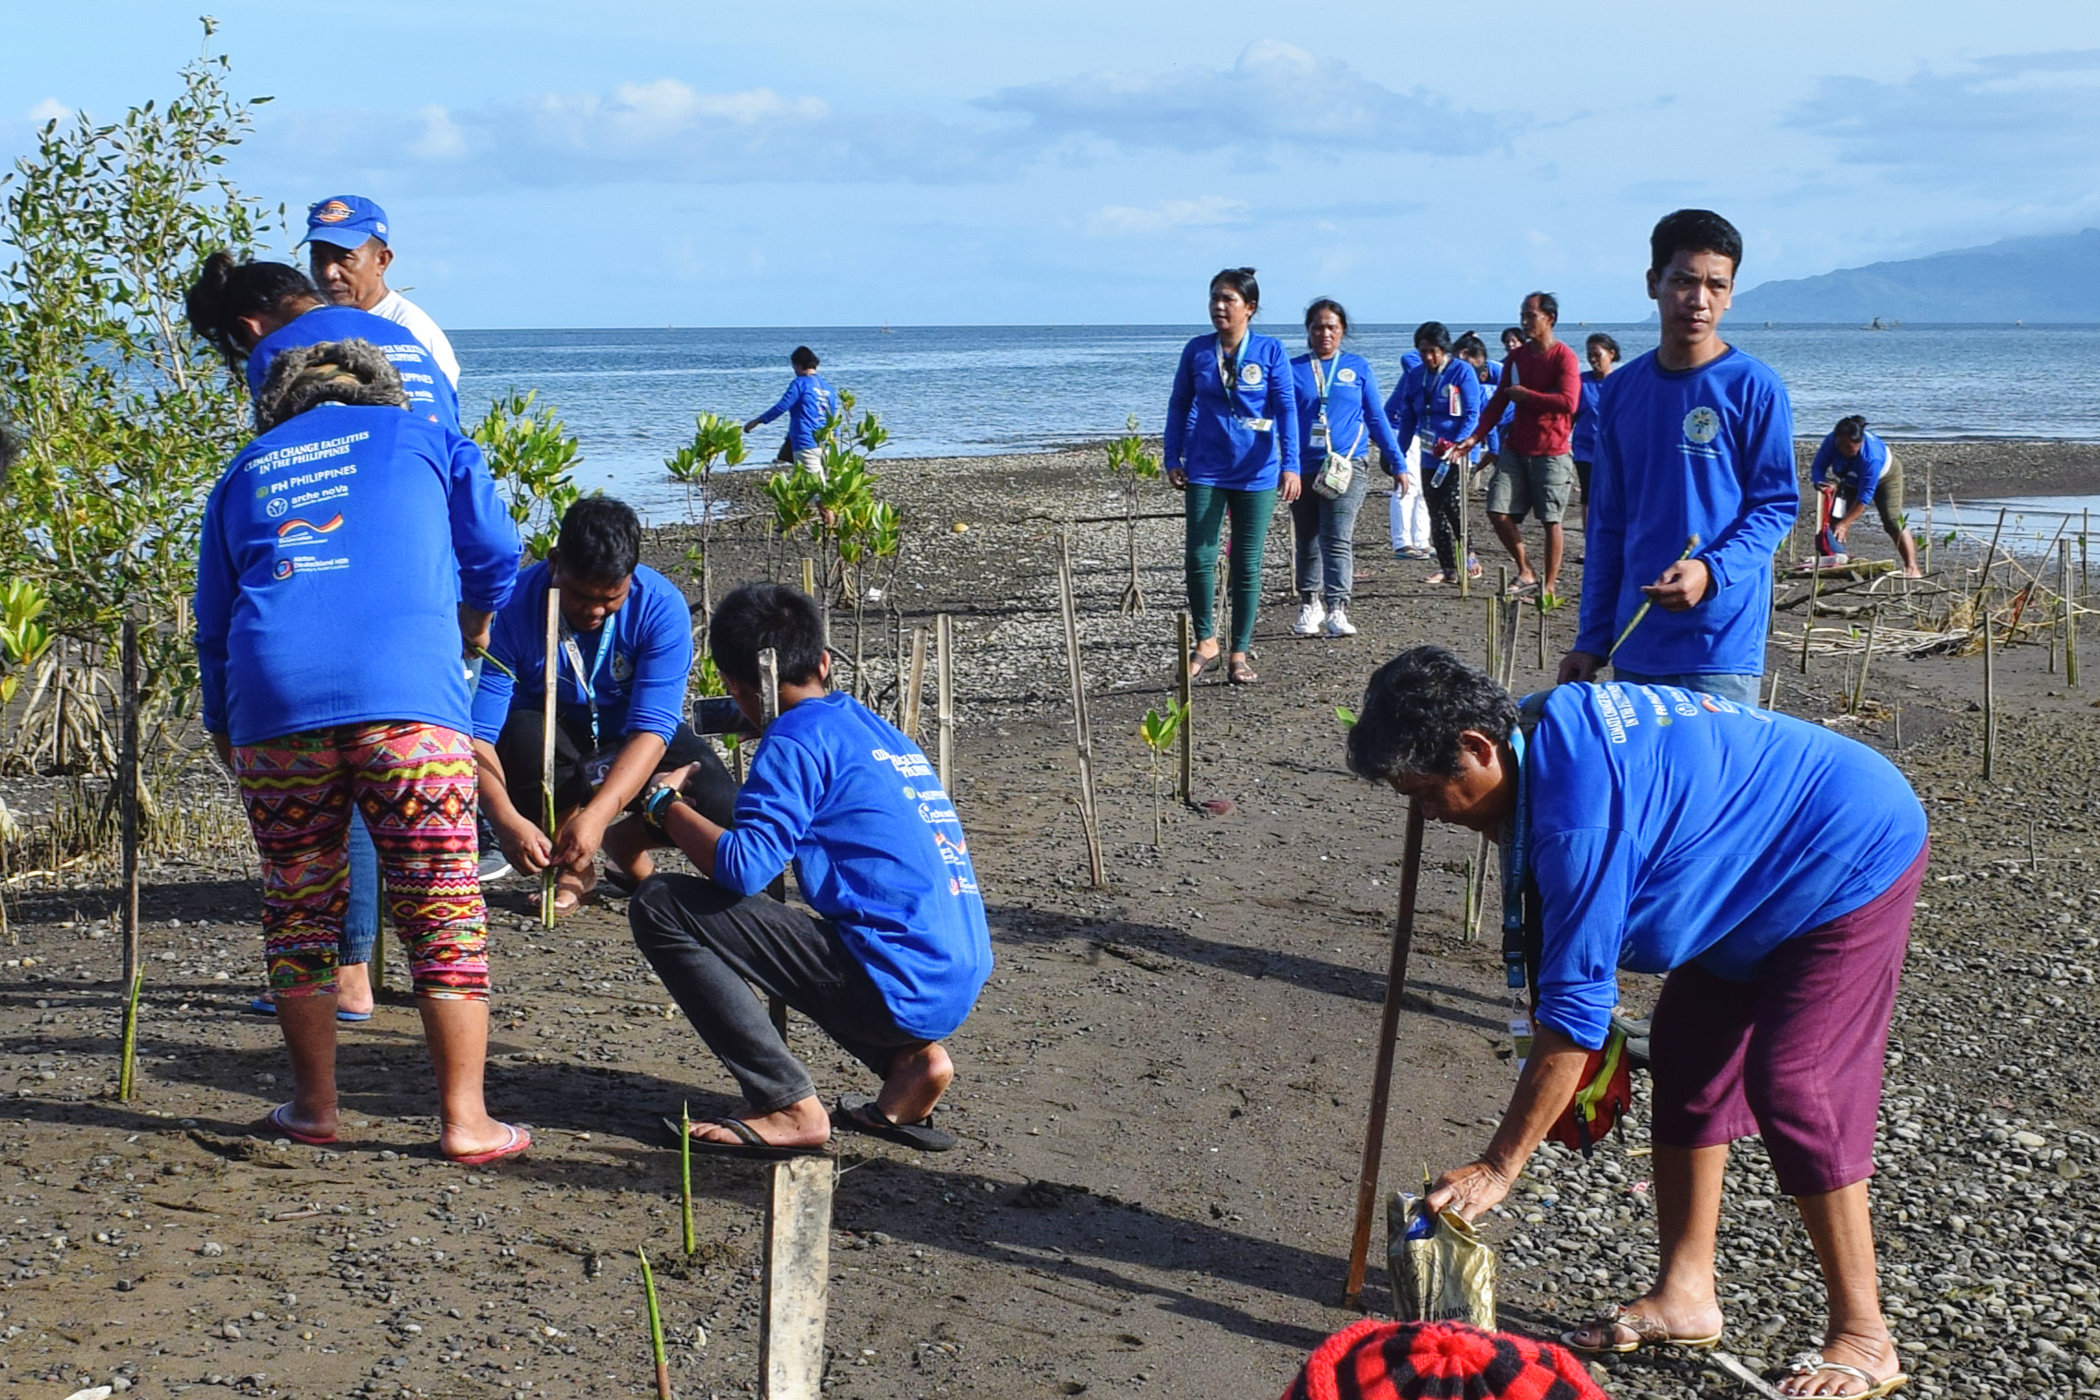 People at the coast planting seedlings